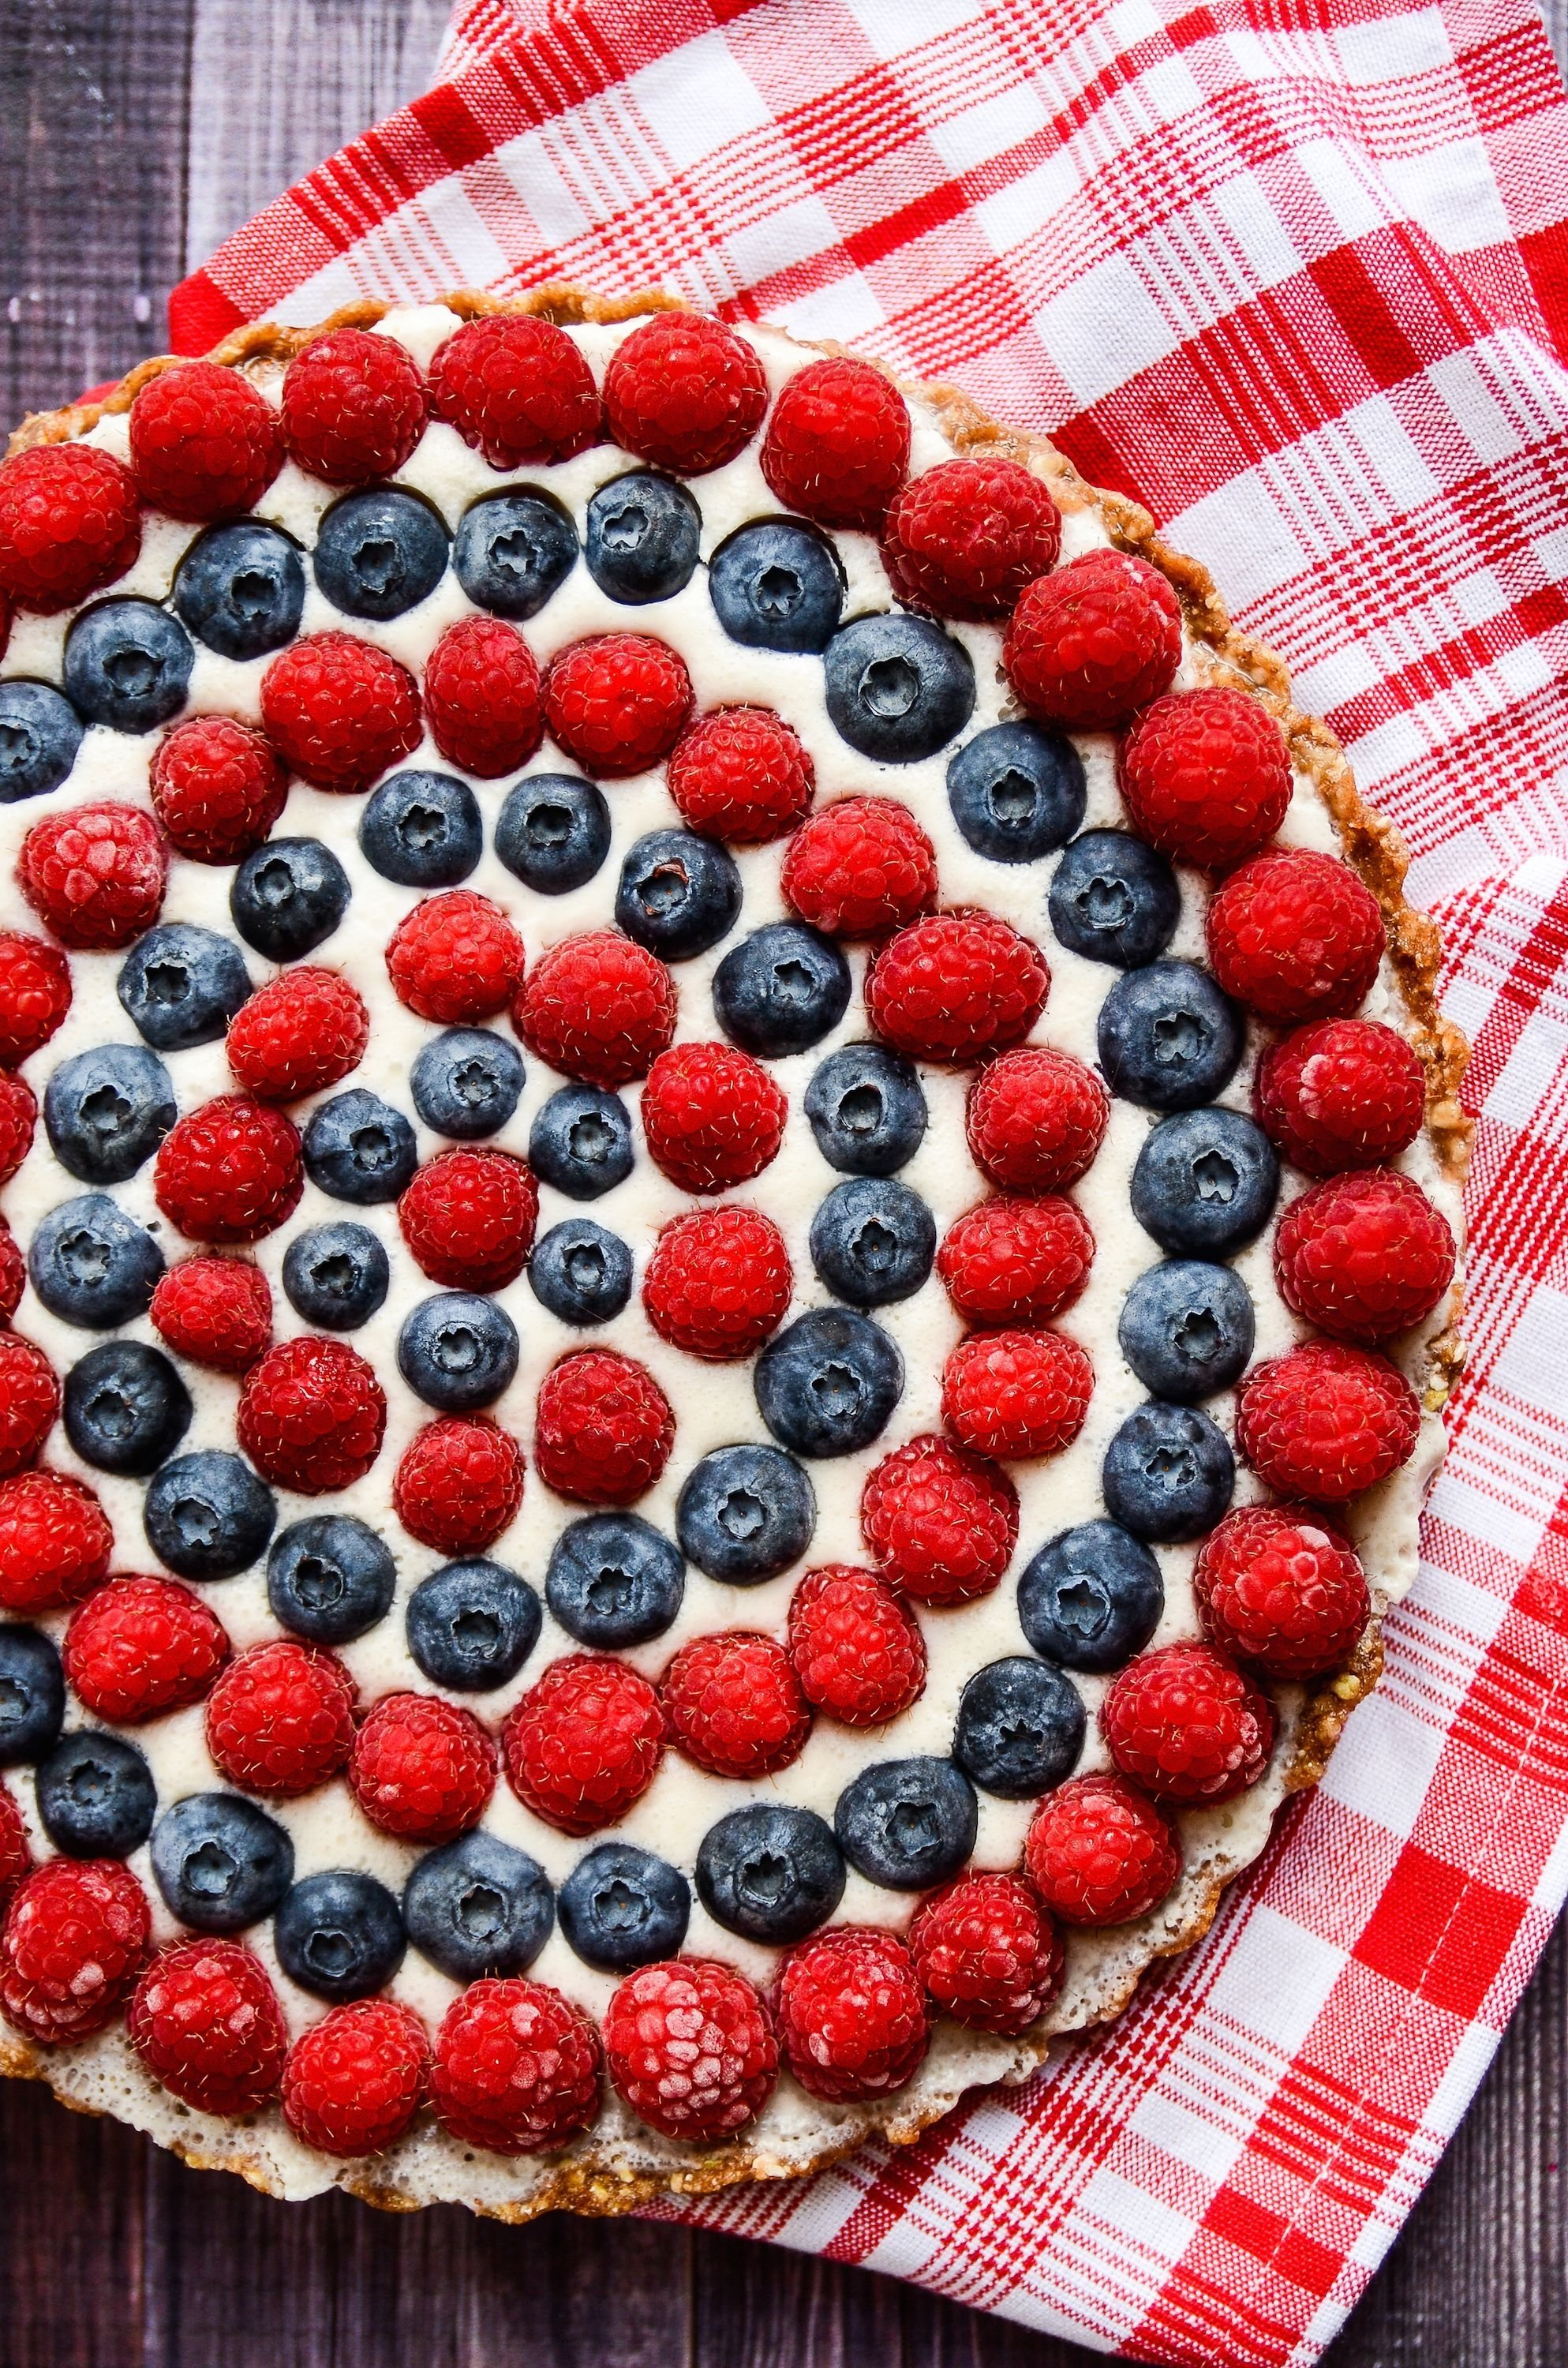 10 Stunning Fourth Of July Dessert Ideas 20 4th of july dessert recipes easy fourth of july desserts 2020